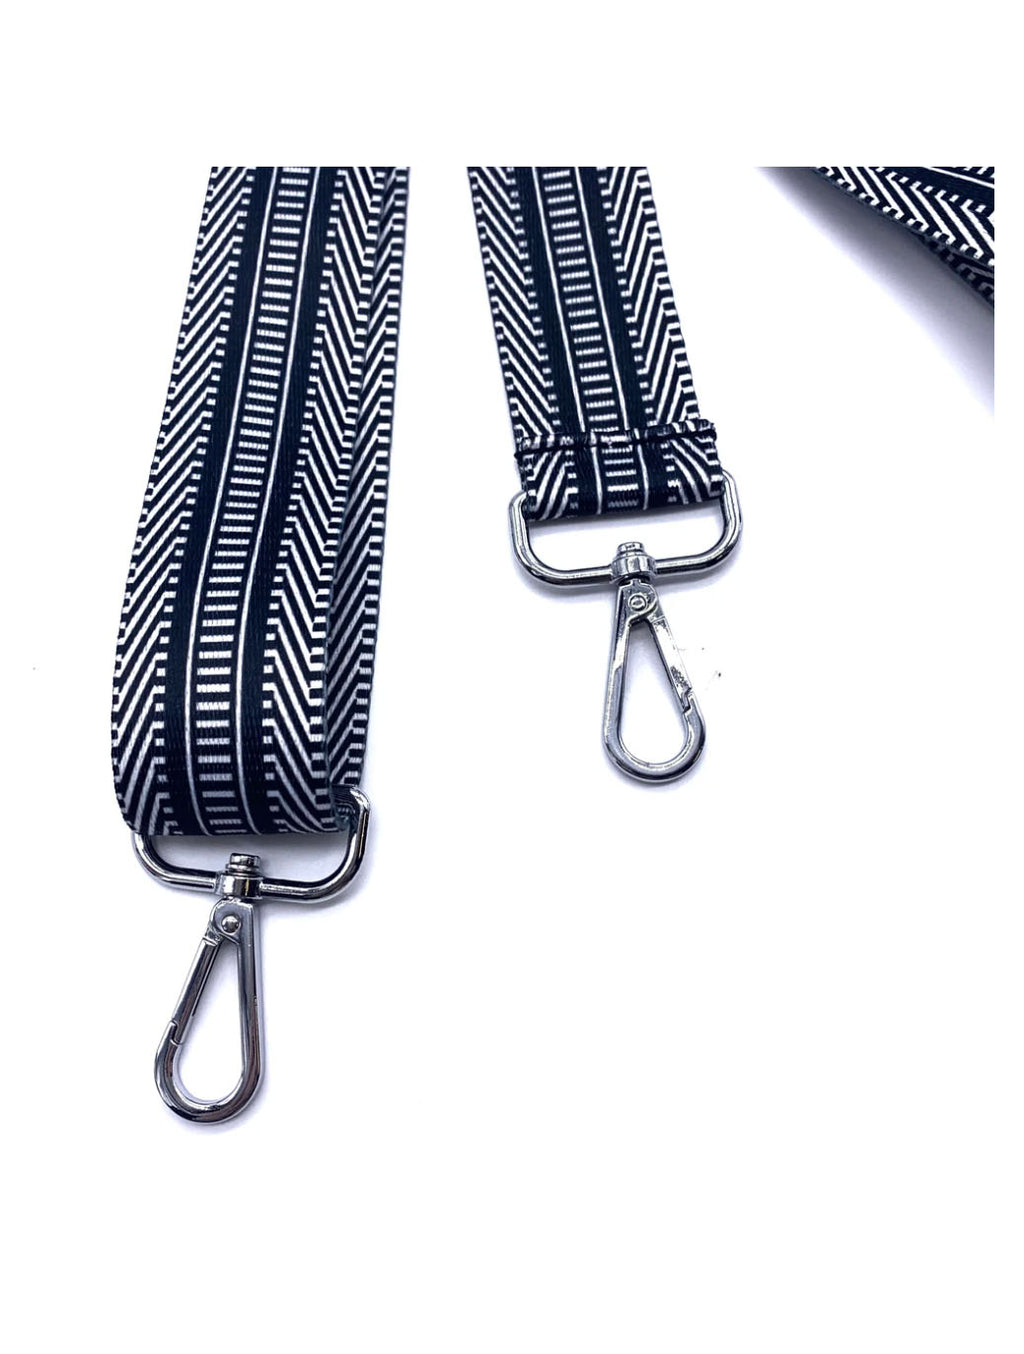 Ribbon Bag Strap in Black/Navy